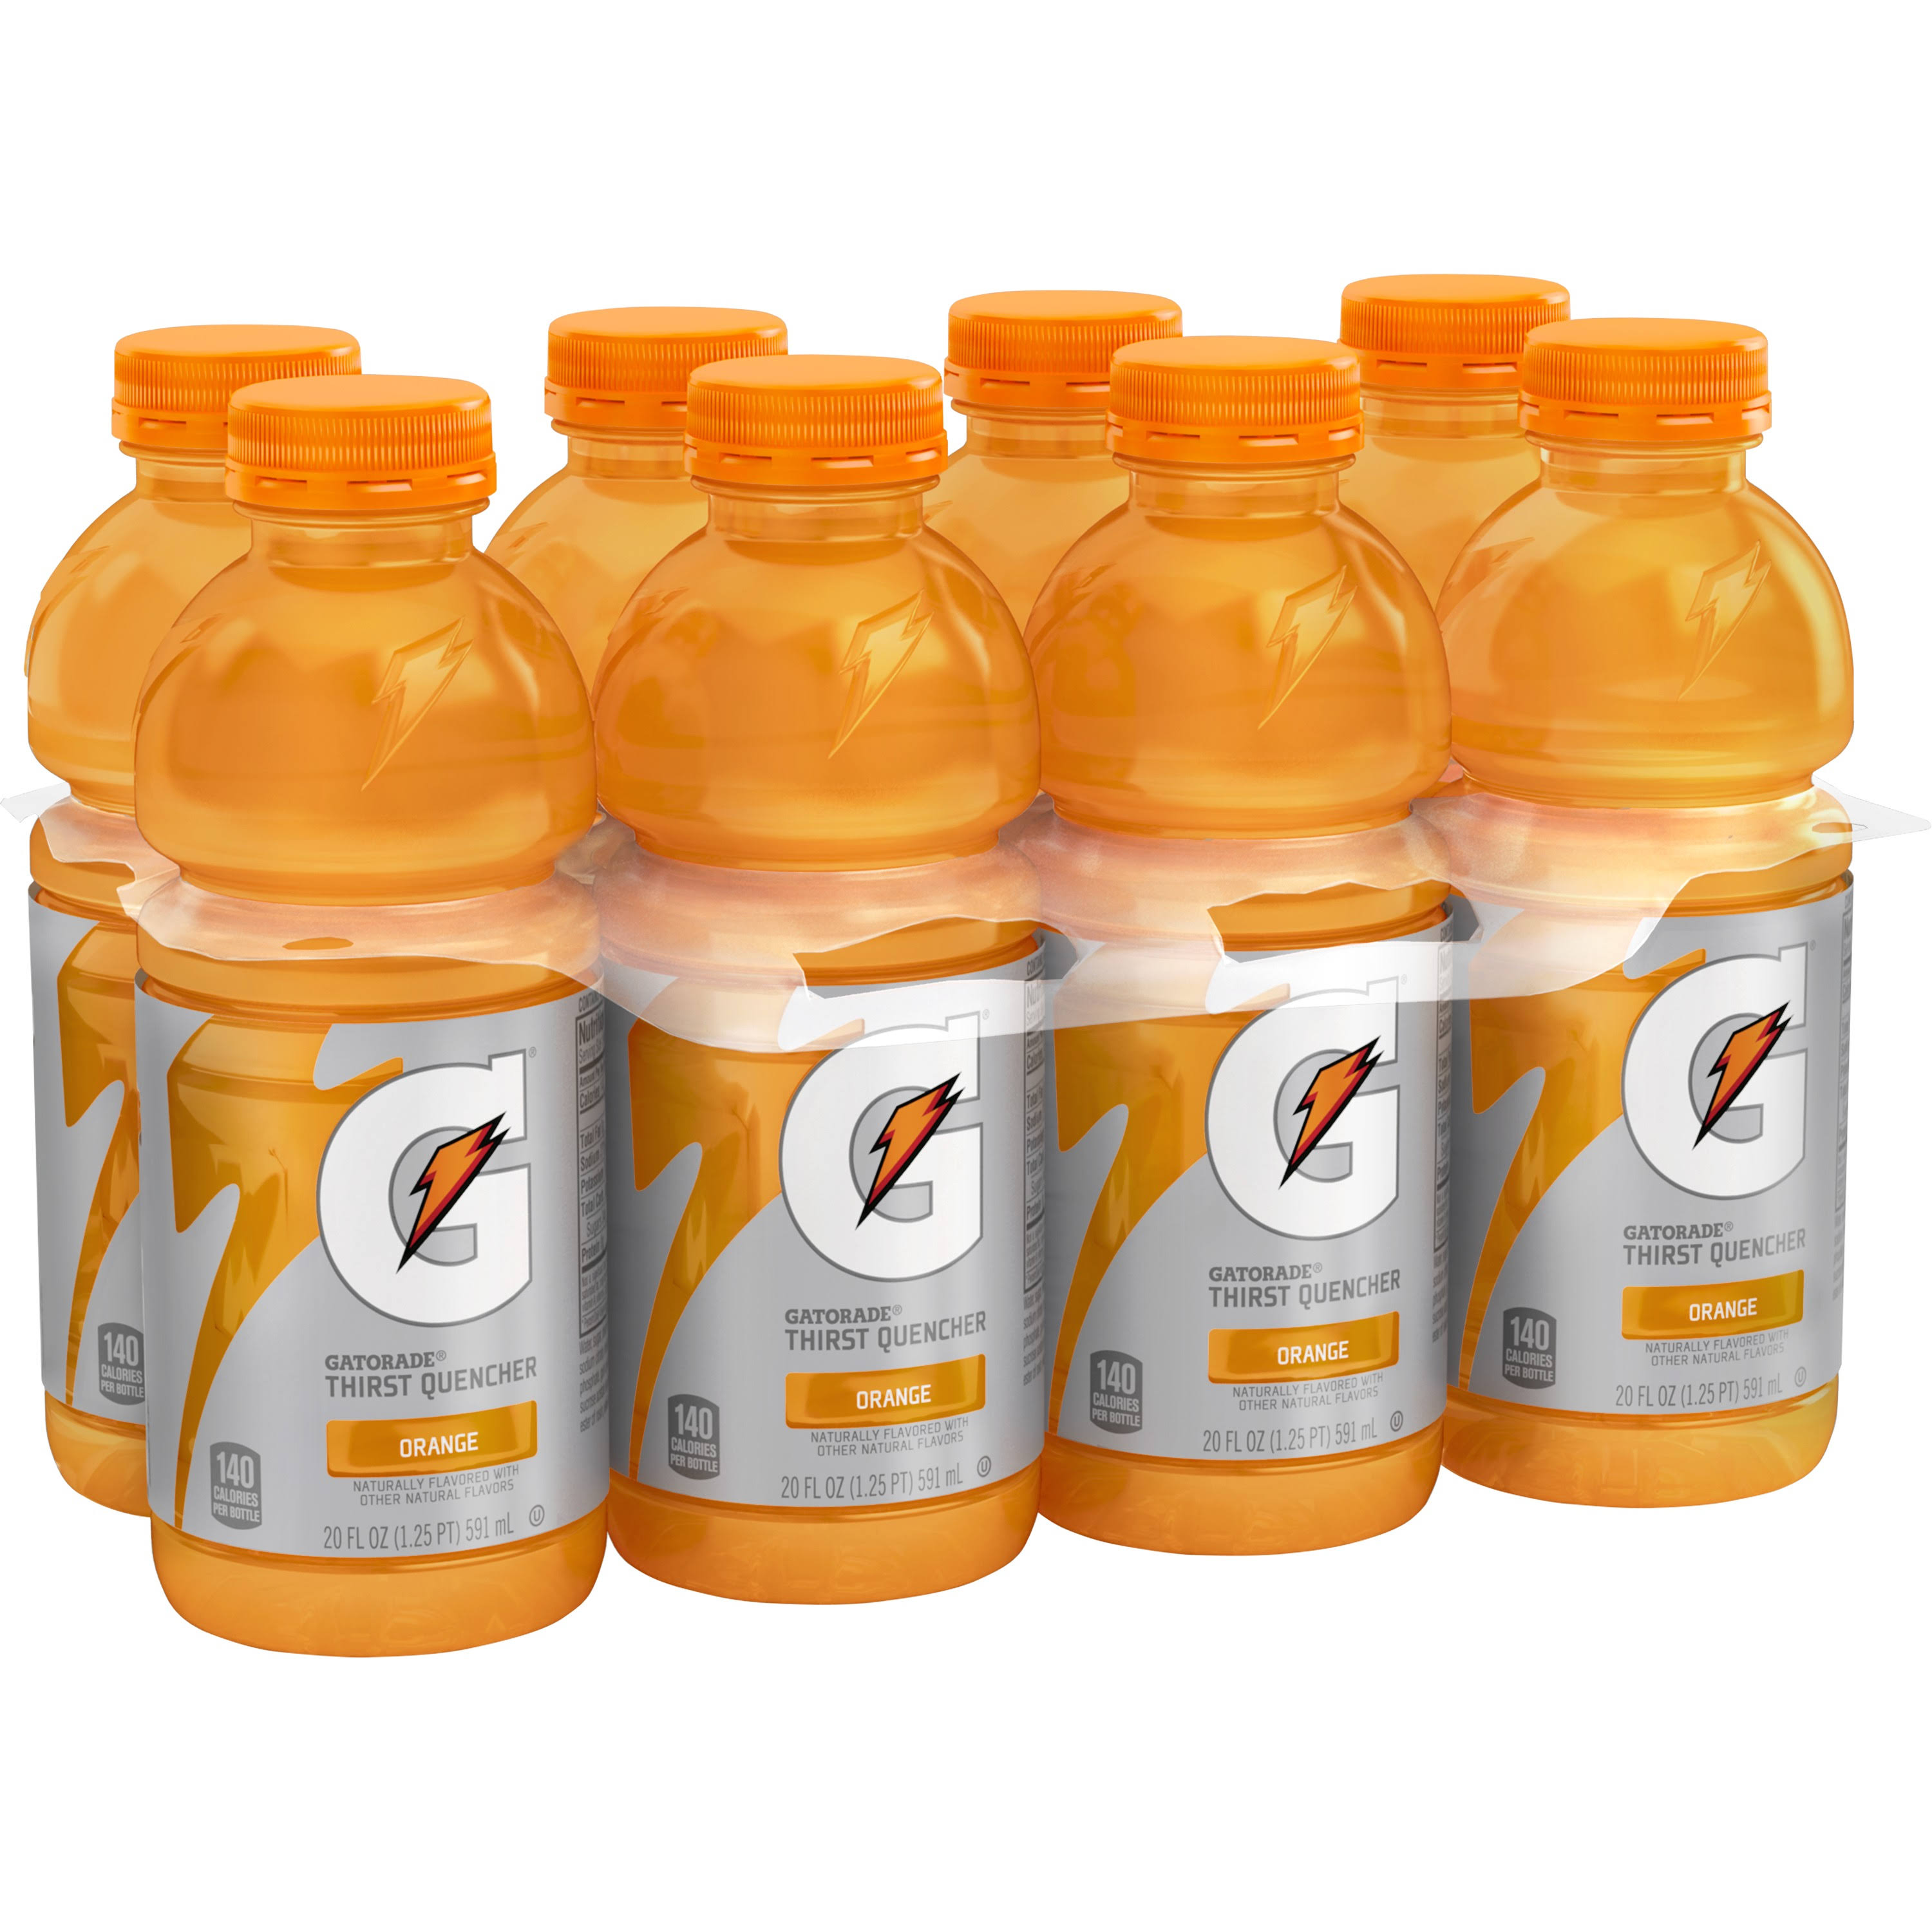 Gatorade Thirst Quencher - Orange, 20oz